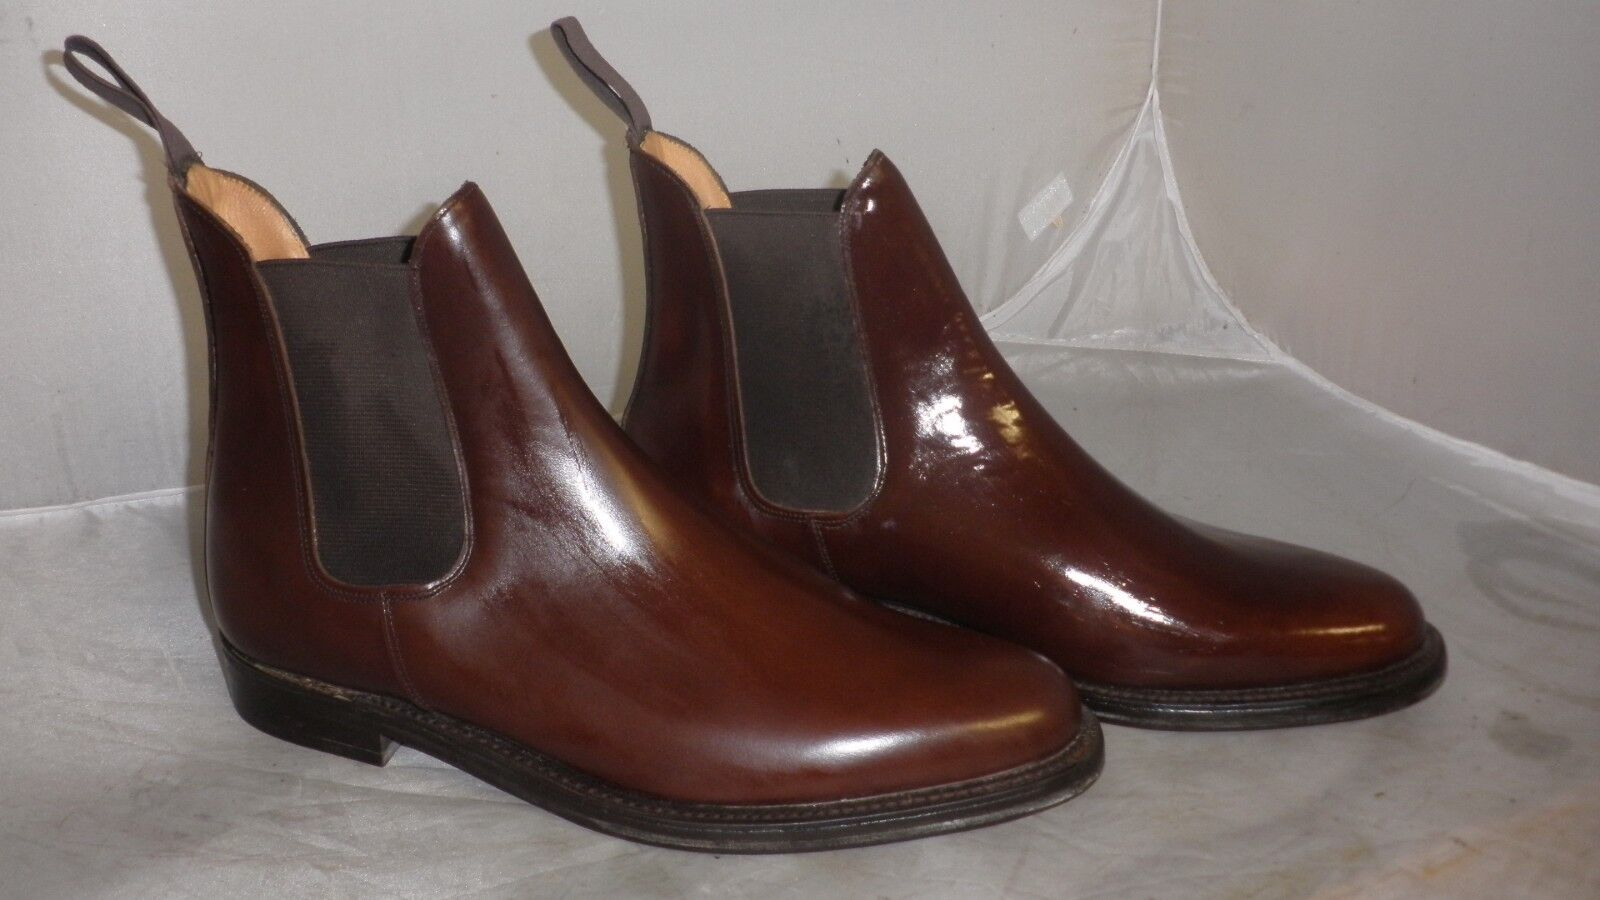 Brown Leather Chelsea Boots With Leather Soles Size 8.5 -  Not In Original Box